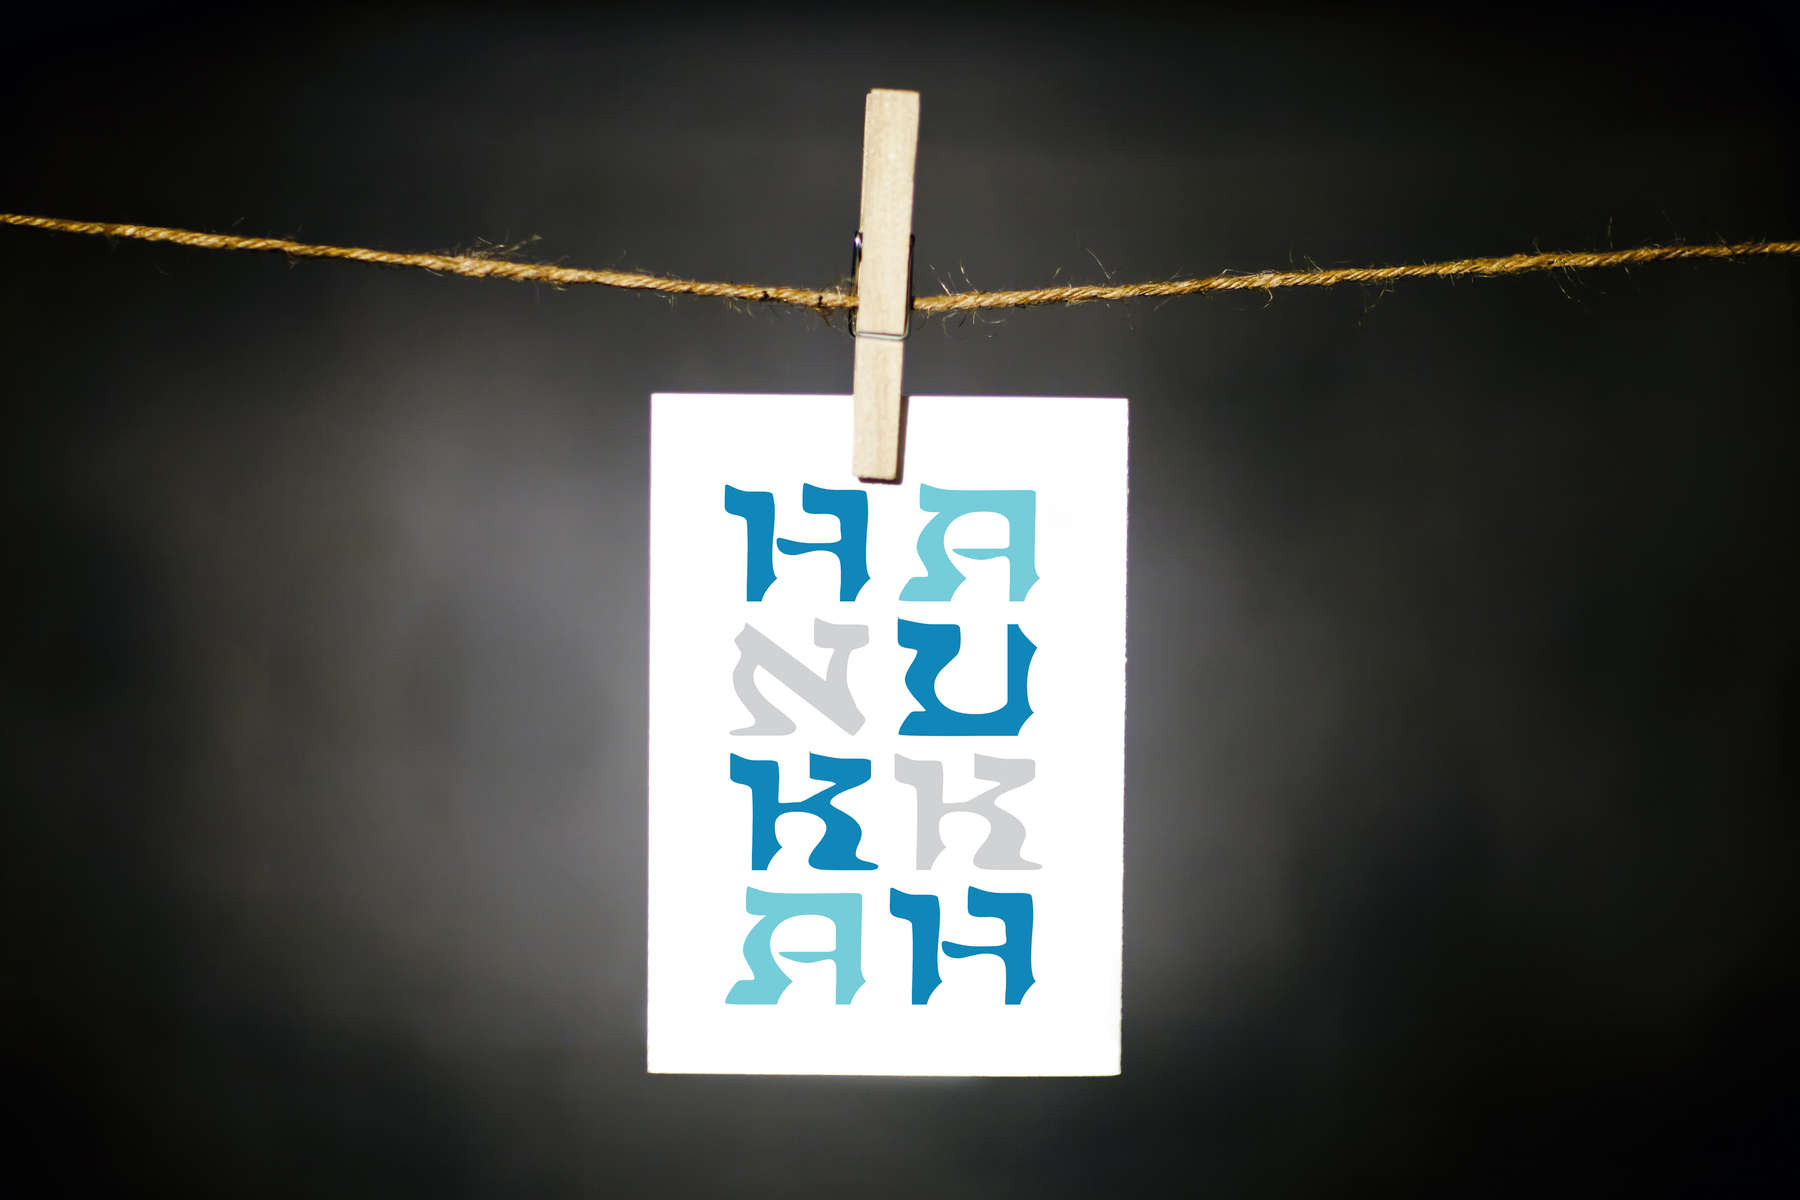 pURCHASE hEREtHE hOLIDAY sEASON iS cOMING uP qUICK. tHIS cARD iS pERFECT fOR sENDING hAPPY hANUKKAH wISHES tO yOUR fAVORITE pEOPLE.eACH cARD iS pRINTED oN 100# sUNDANCE aRT pAPER wITH fELT fINISH. eACH oNE mEASURES 3.5{quote} x 5{quote} aND iS aCCOMPANIED bY a cOORDINATING rECYCLED kRAFT pAPER 4 bAR eNVELOPE. dOODLEgIRL cARDS aRE pROFESSIONALLY pRINTED + iNDIVIDUALLY pACKAGED iN cELLOPHANE wRAPS tO kEEP tHEM pRISTINE uNTIL yOU aRE rEADY tO sHARE tHEM wITH tHE wORLD.cRAFTED + pRINTED iN bOULDER, cOLORADO, uSA.**fOR oTHER dOODLEgIRL gOODNESS, bE sURE tO vISIT www.doodlegirldesigns.com.